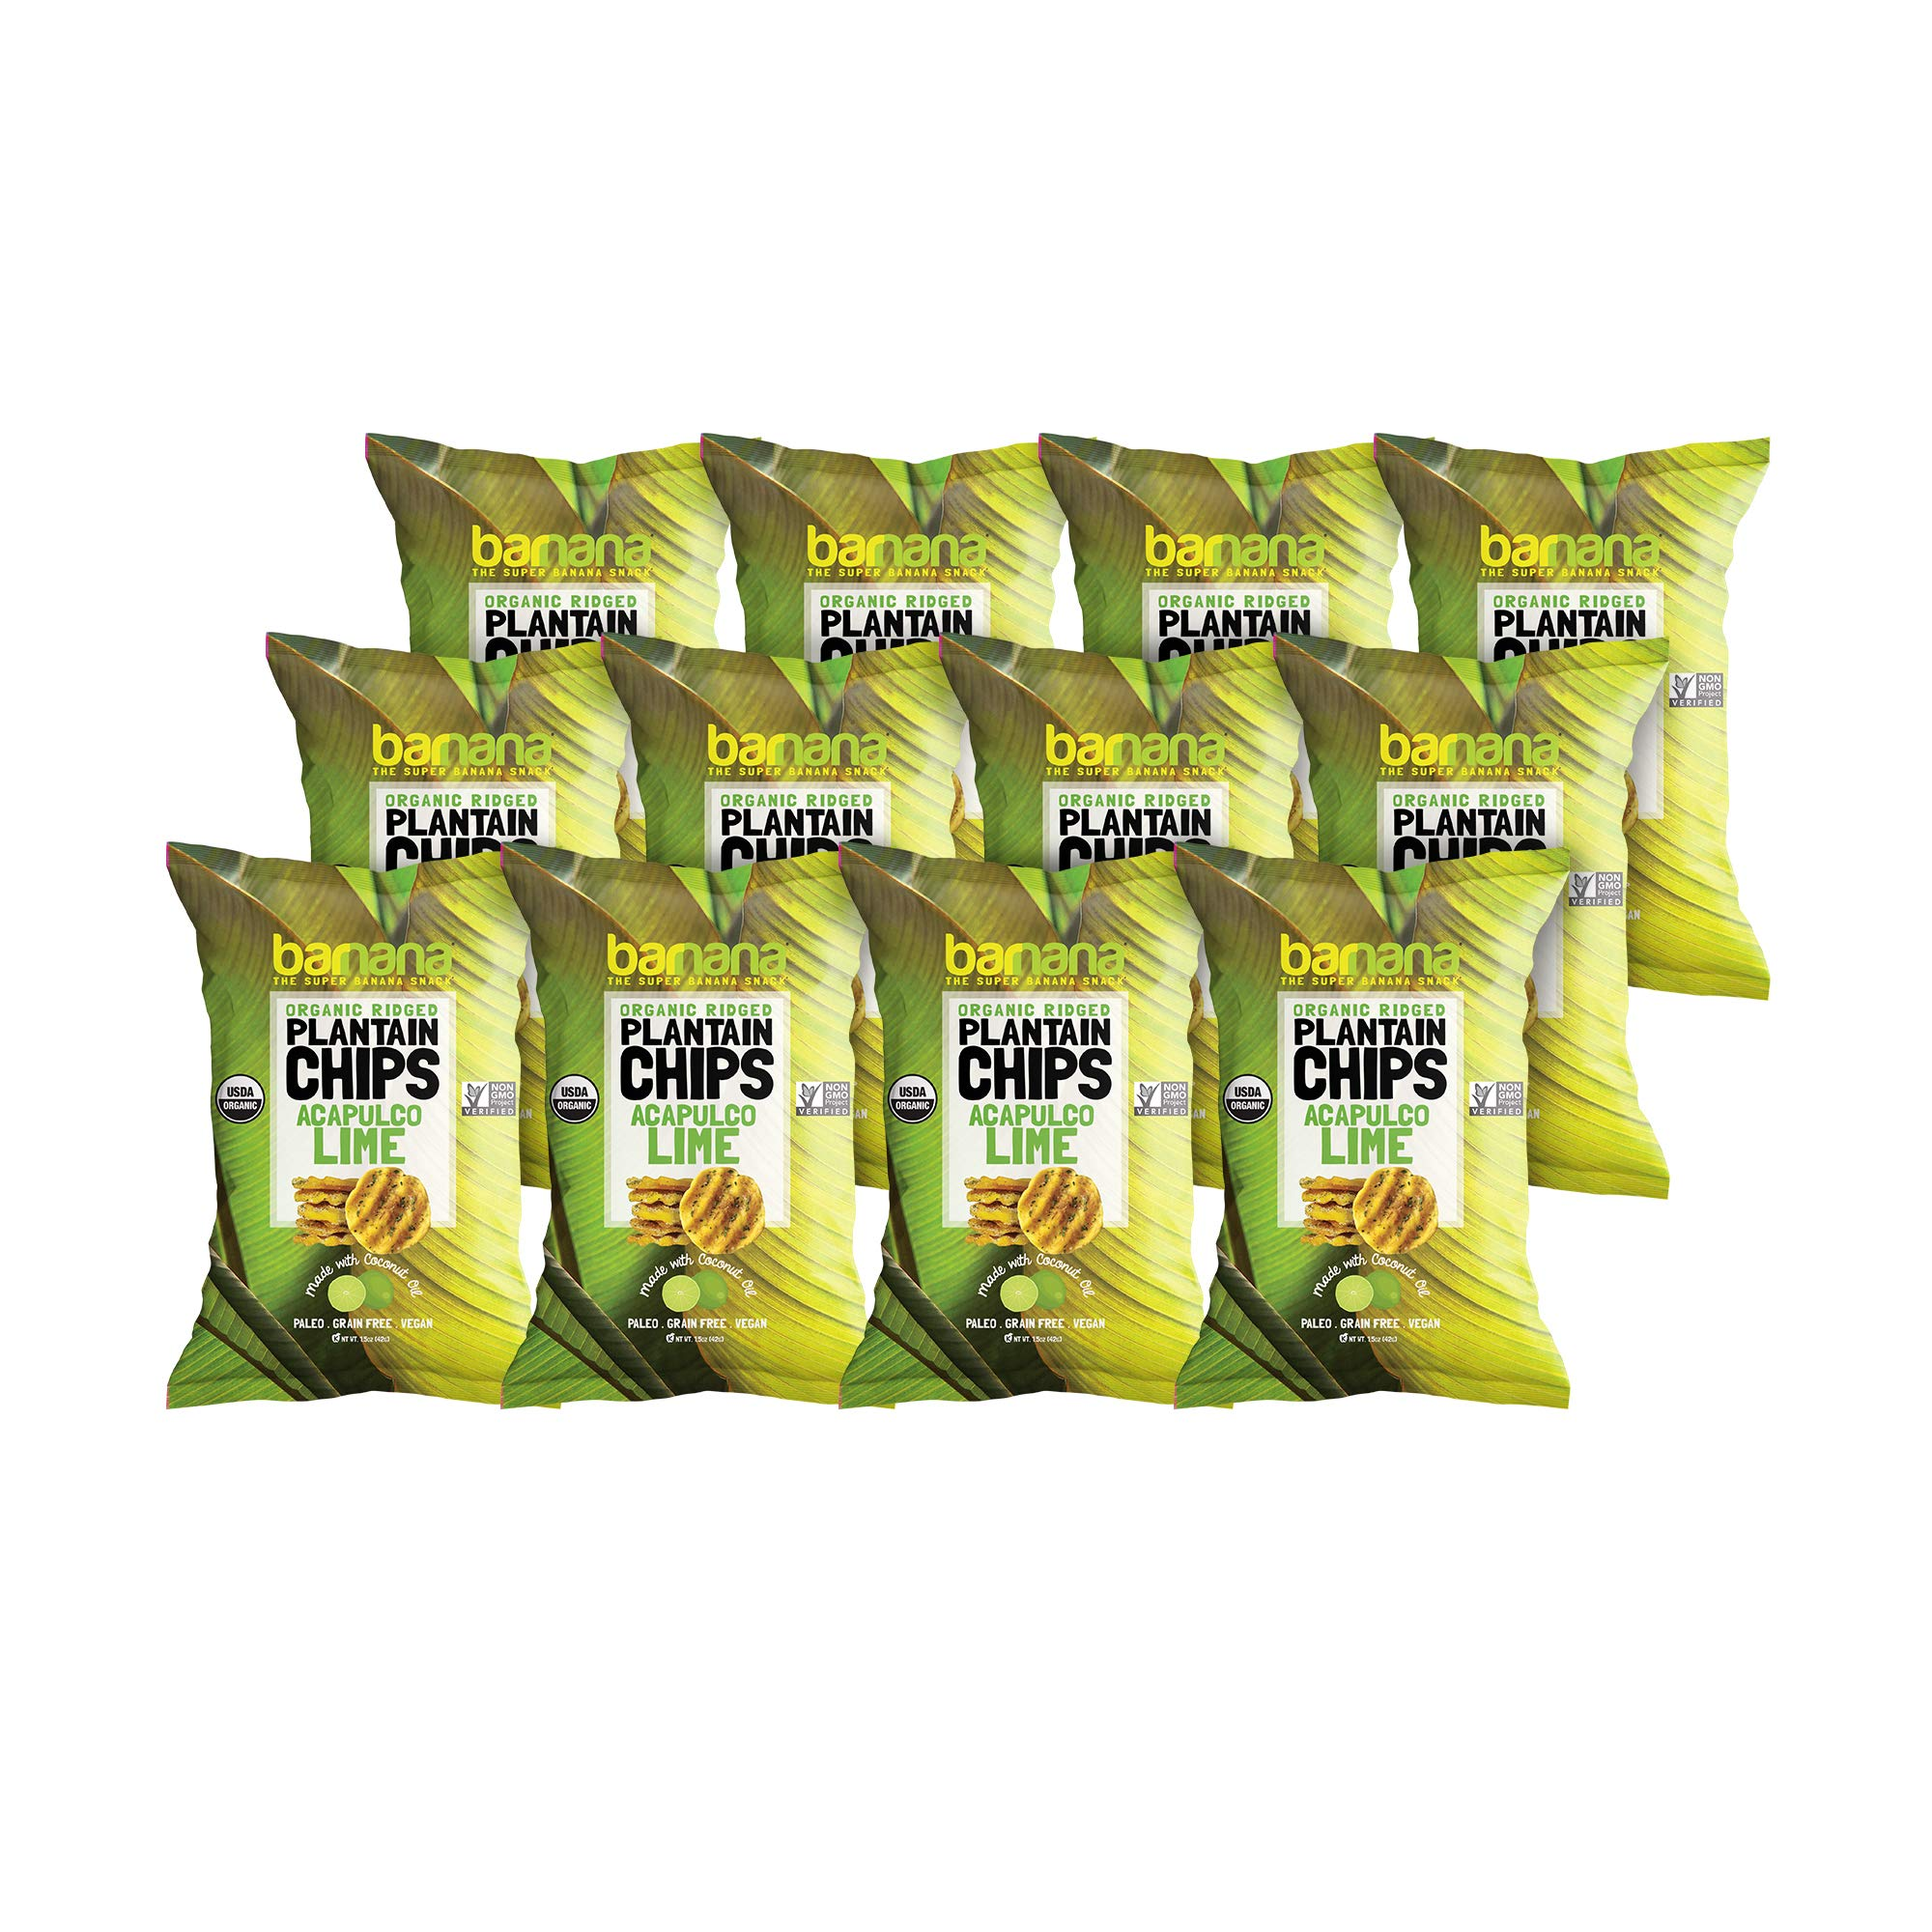 Barnana Organic Plantain Chips - Acapulco Lime - 1.5 Ounce, 12 Pack Plantains - Barnana Salty, Crunchy, Thick Sliced Snack - Best Chip For Your Everyday Life - Cooked in Premium Coconut Oil